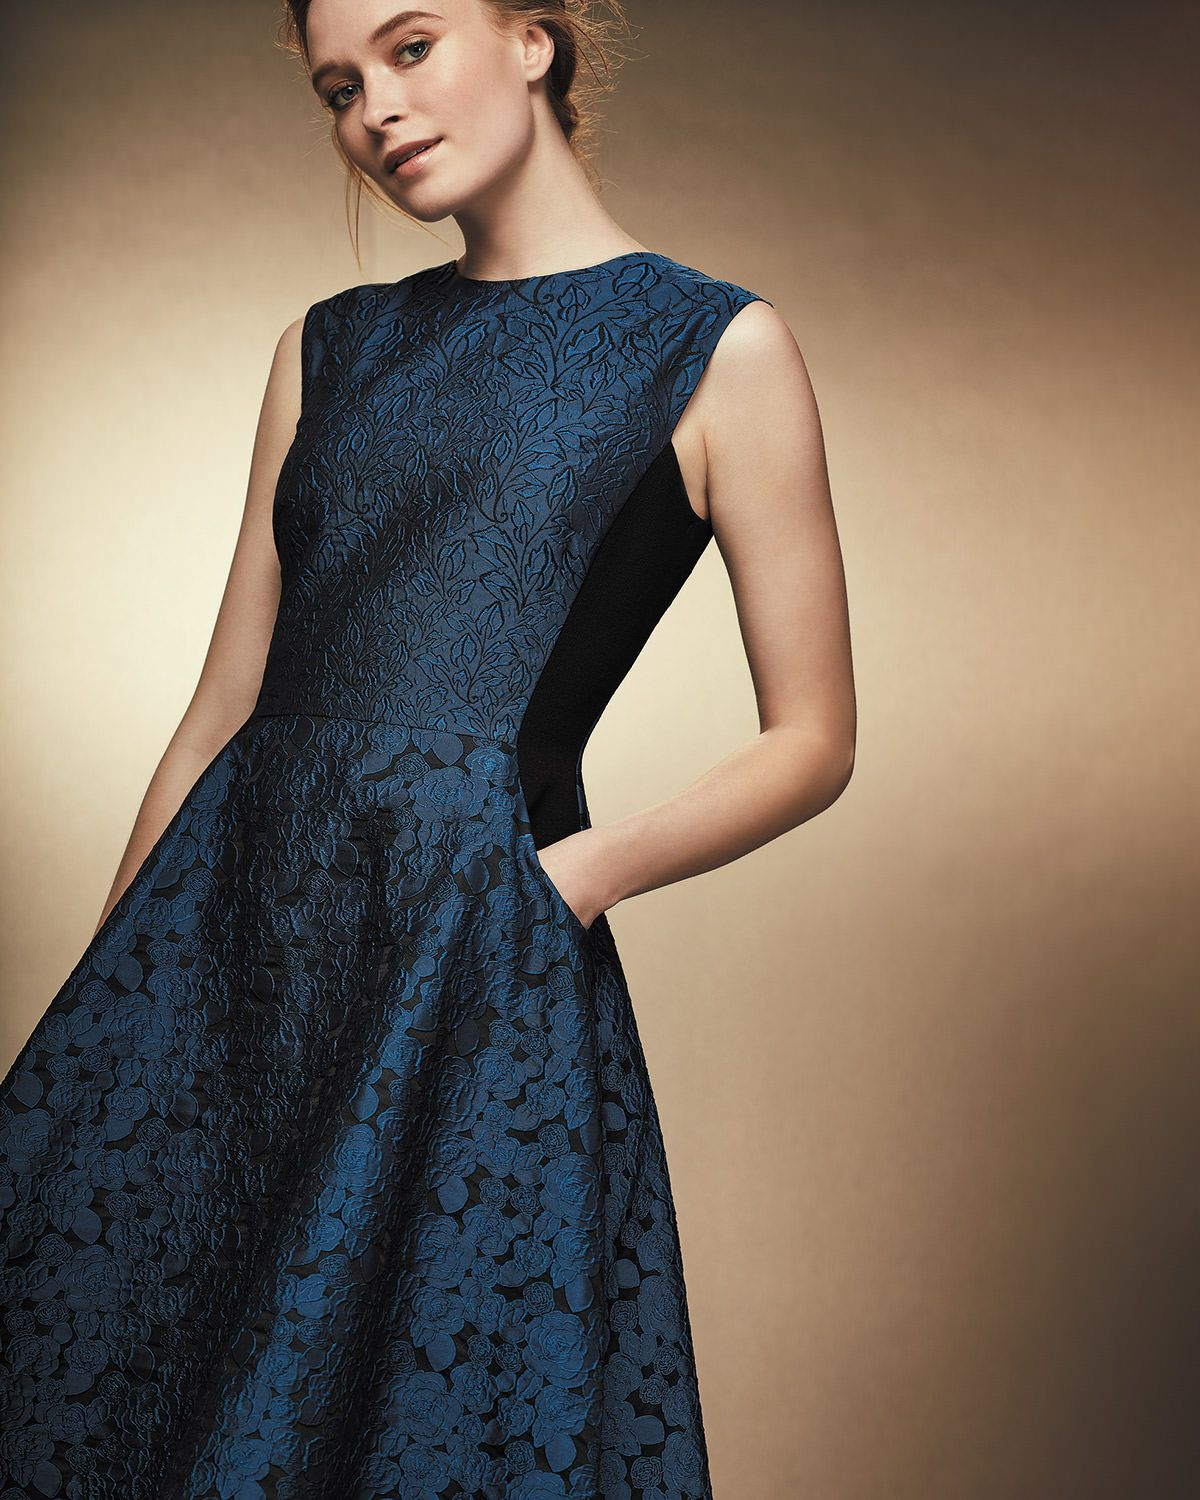 Stunning Mother Of The Bride Dresses: Phase Eight Adalyn Jacquard Dress Blue Mother Of The Bride